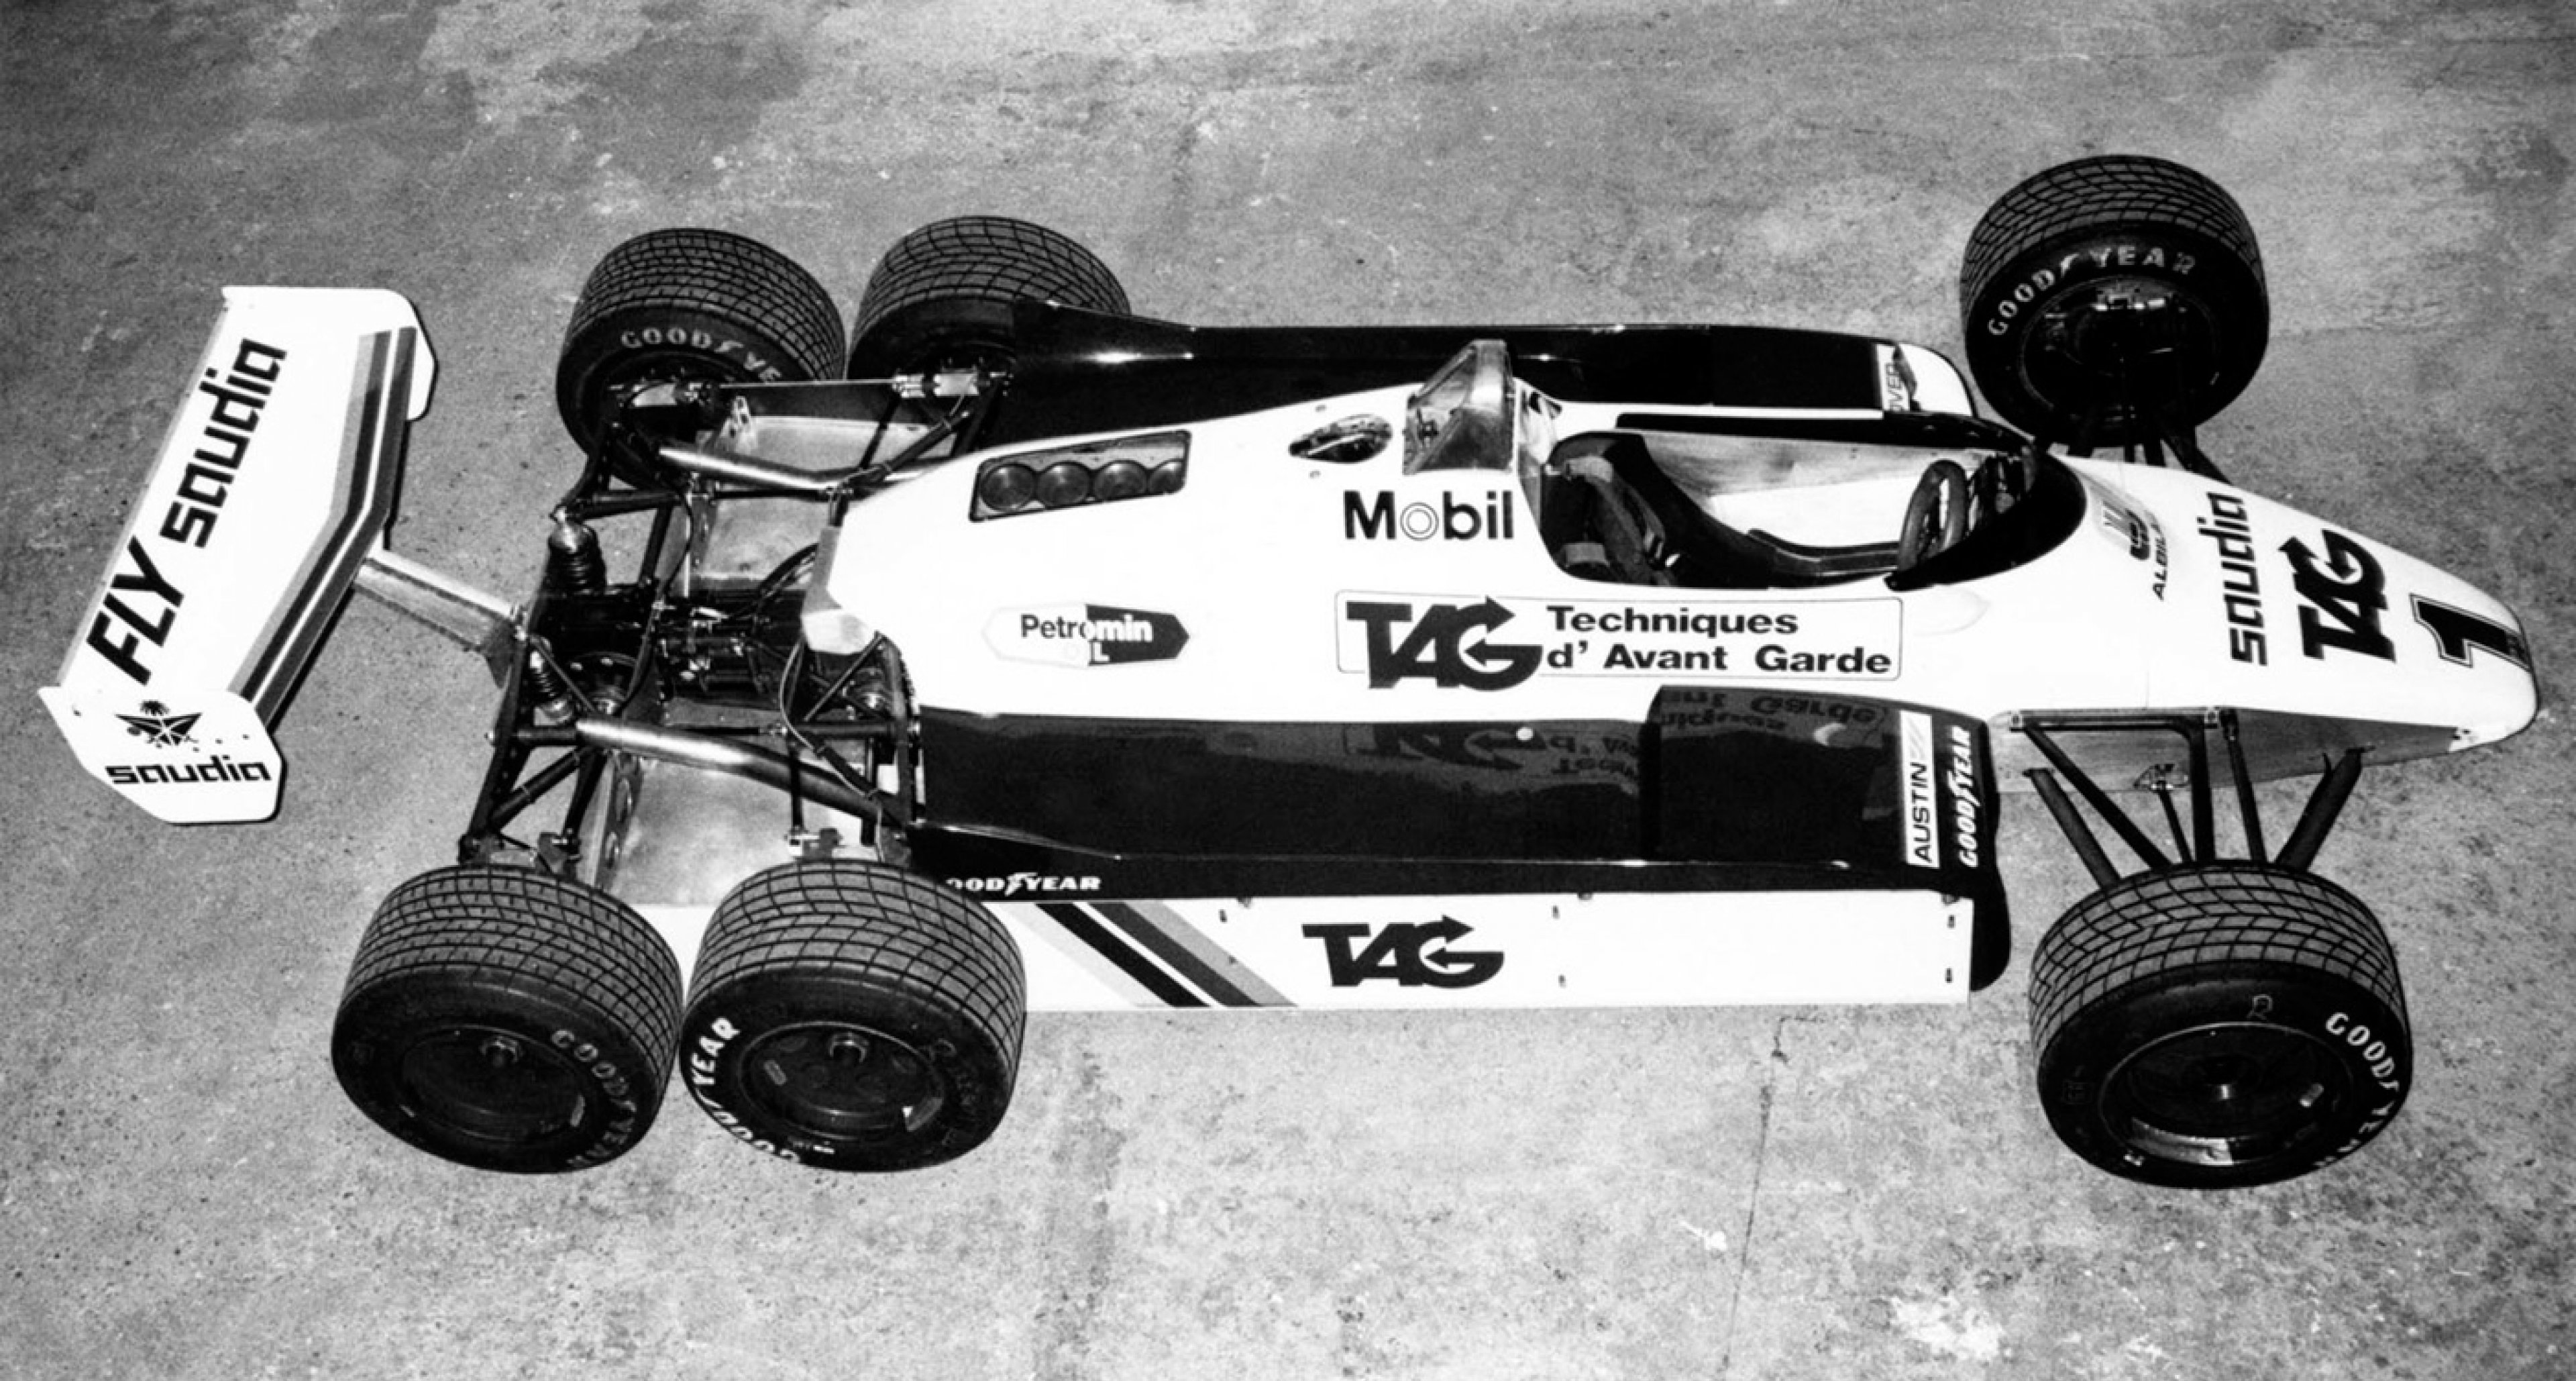 Williams' experimental answer to the Tyrrell P34: The FW08B of 1982